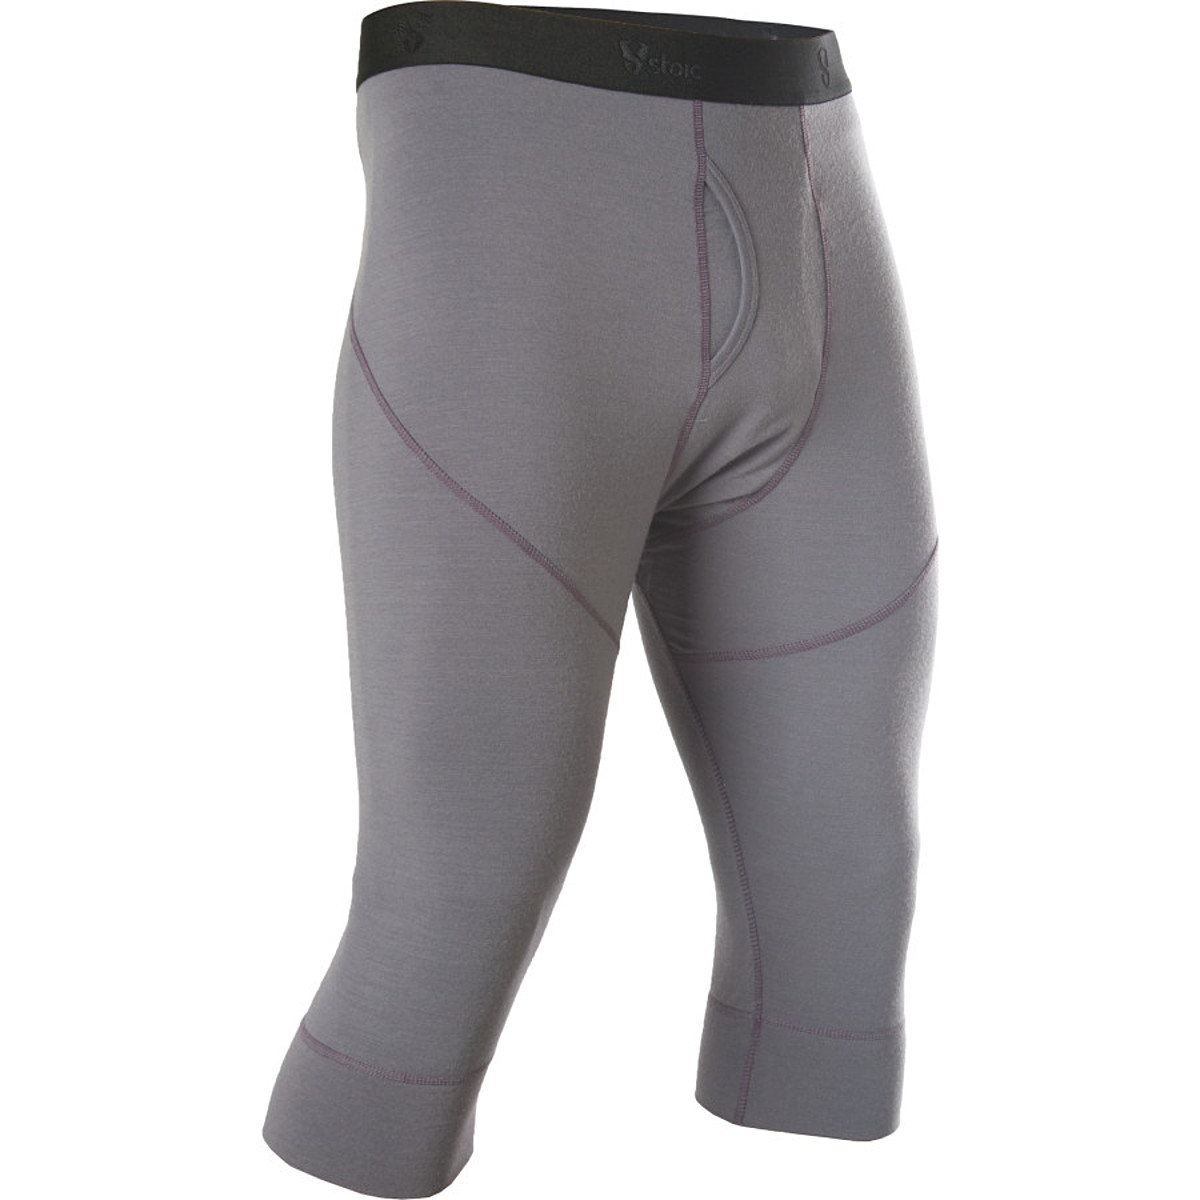 Stoic Merino Bottom - 3/4 Length